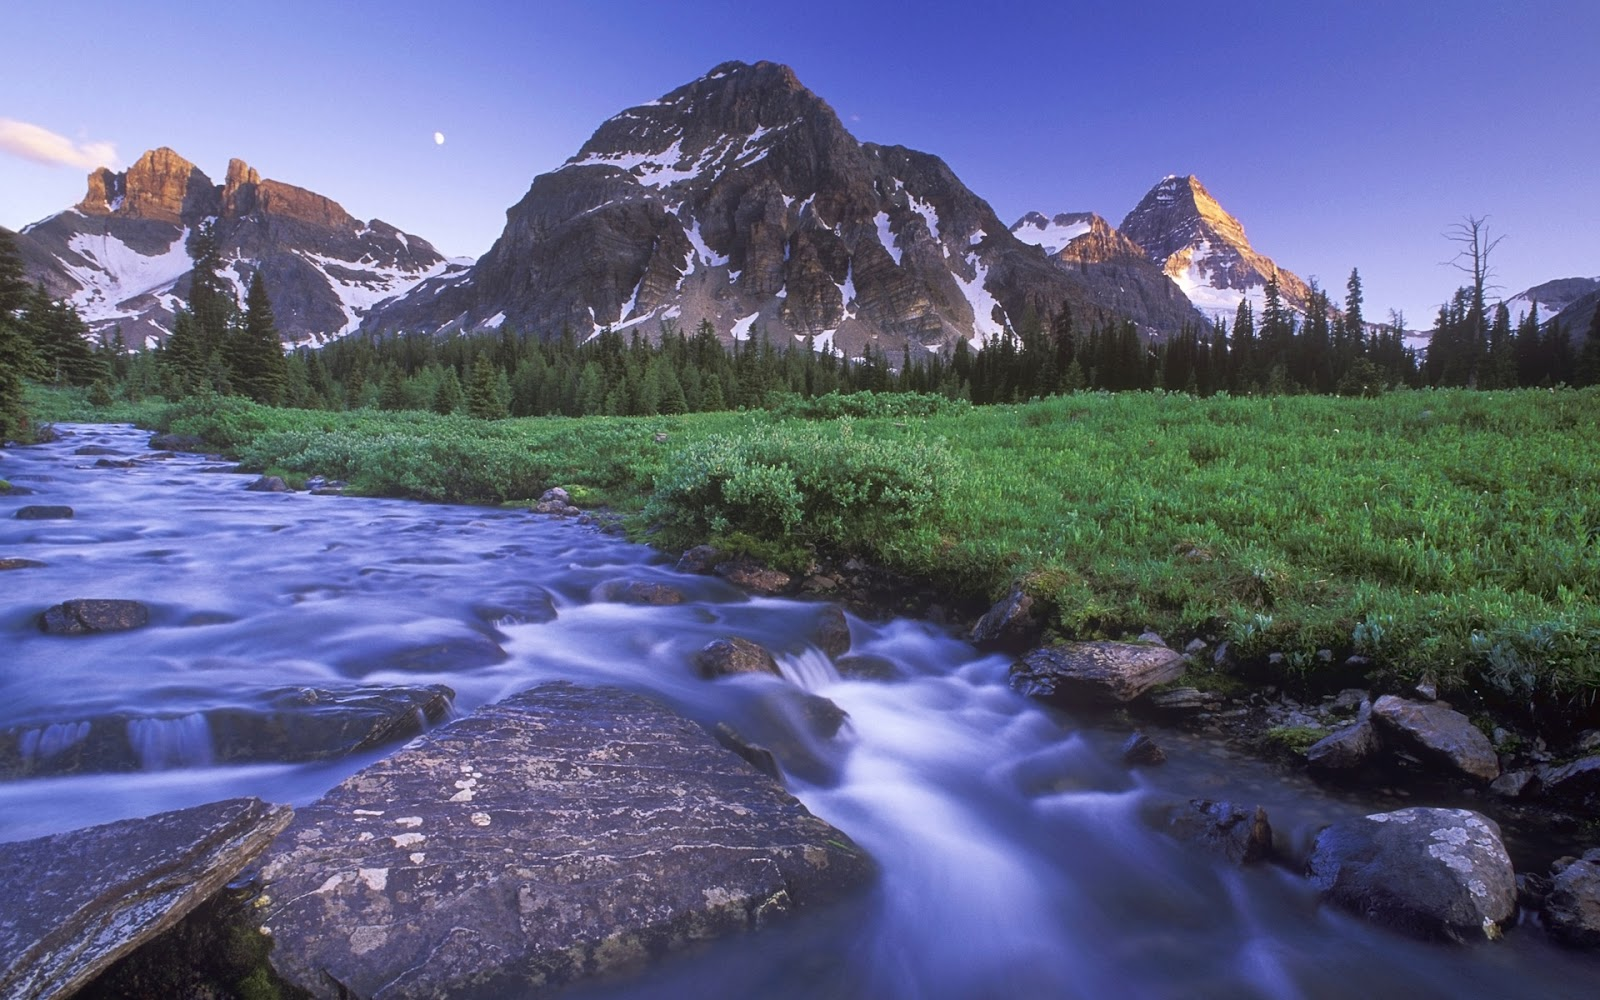 nature landscape wallpapers for windows 7: Desktop Windows 7,Natural And Landscape Wallpaper